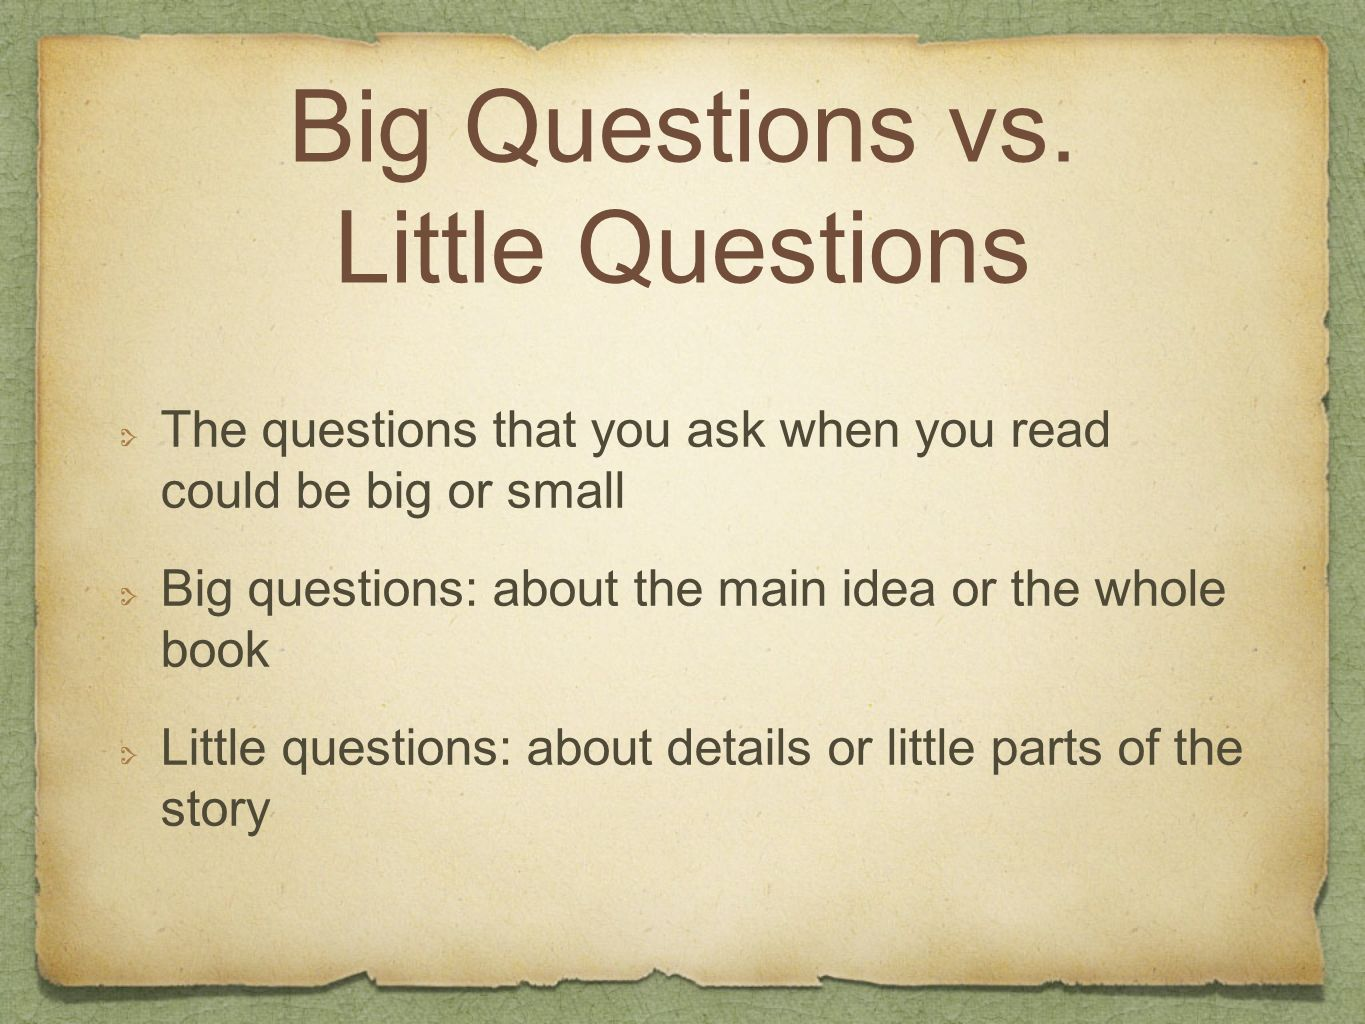 Big Questions vs. Little Questions